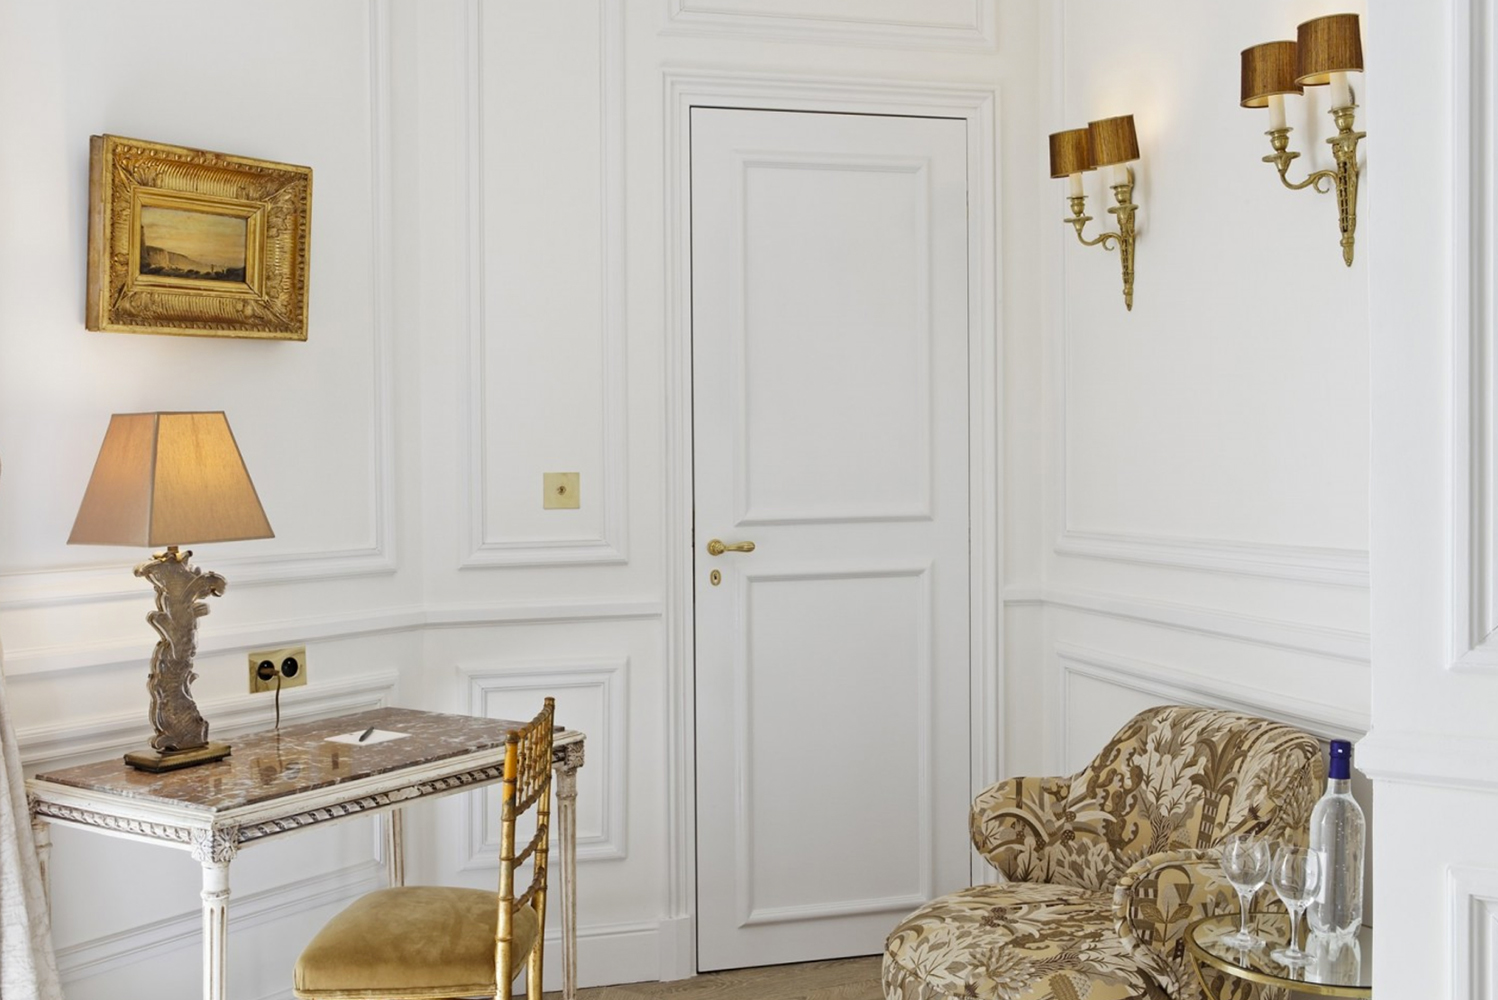 Gonzales designed each guestroom and suite individually, combining styles imbued with romanticism à la française.